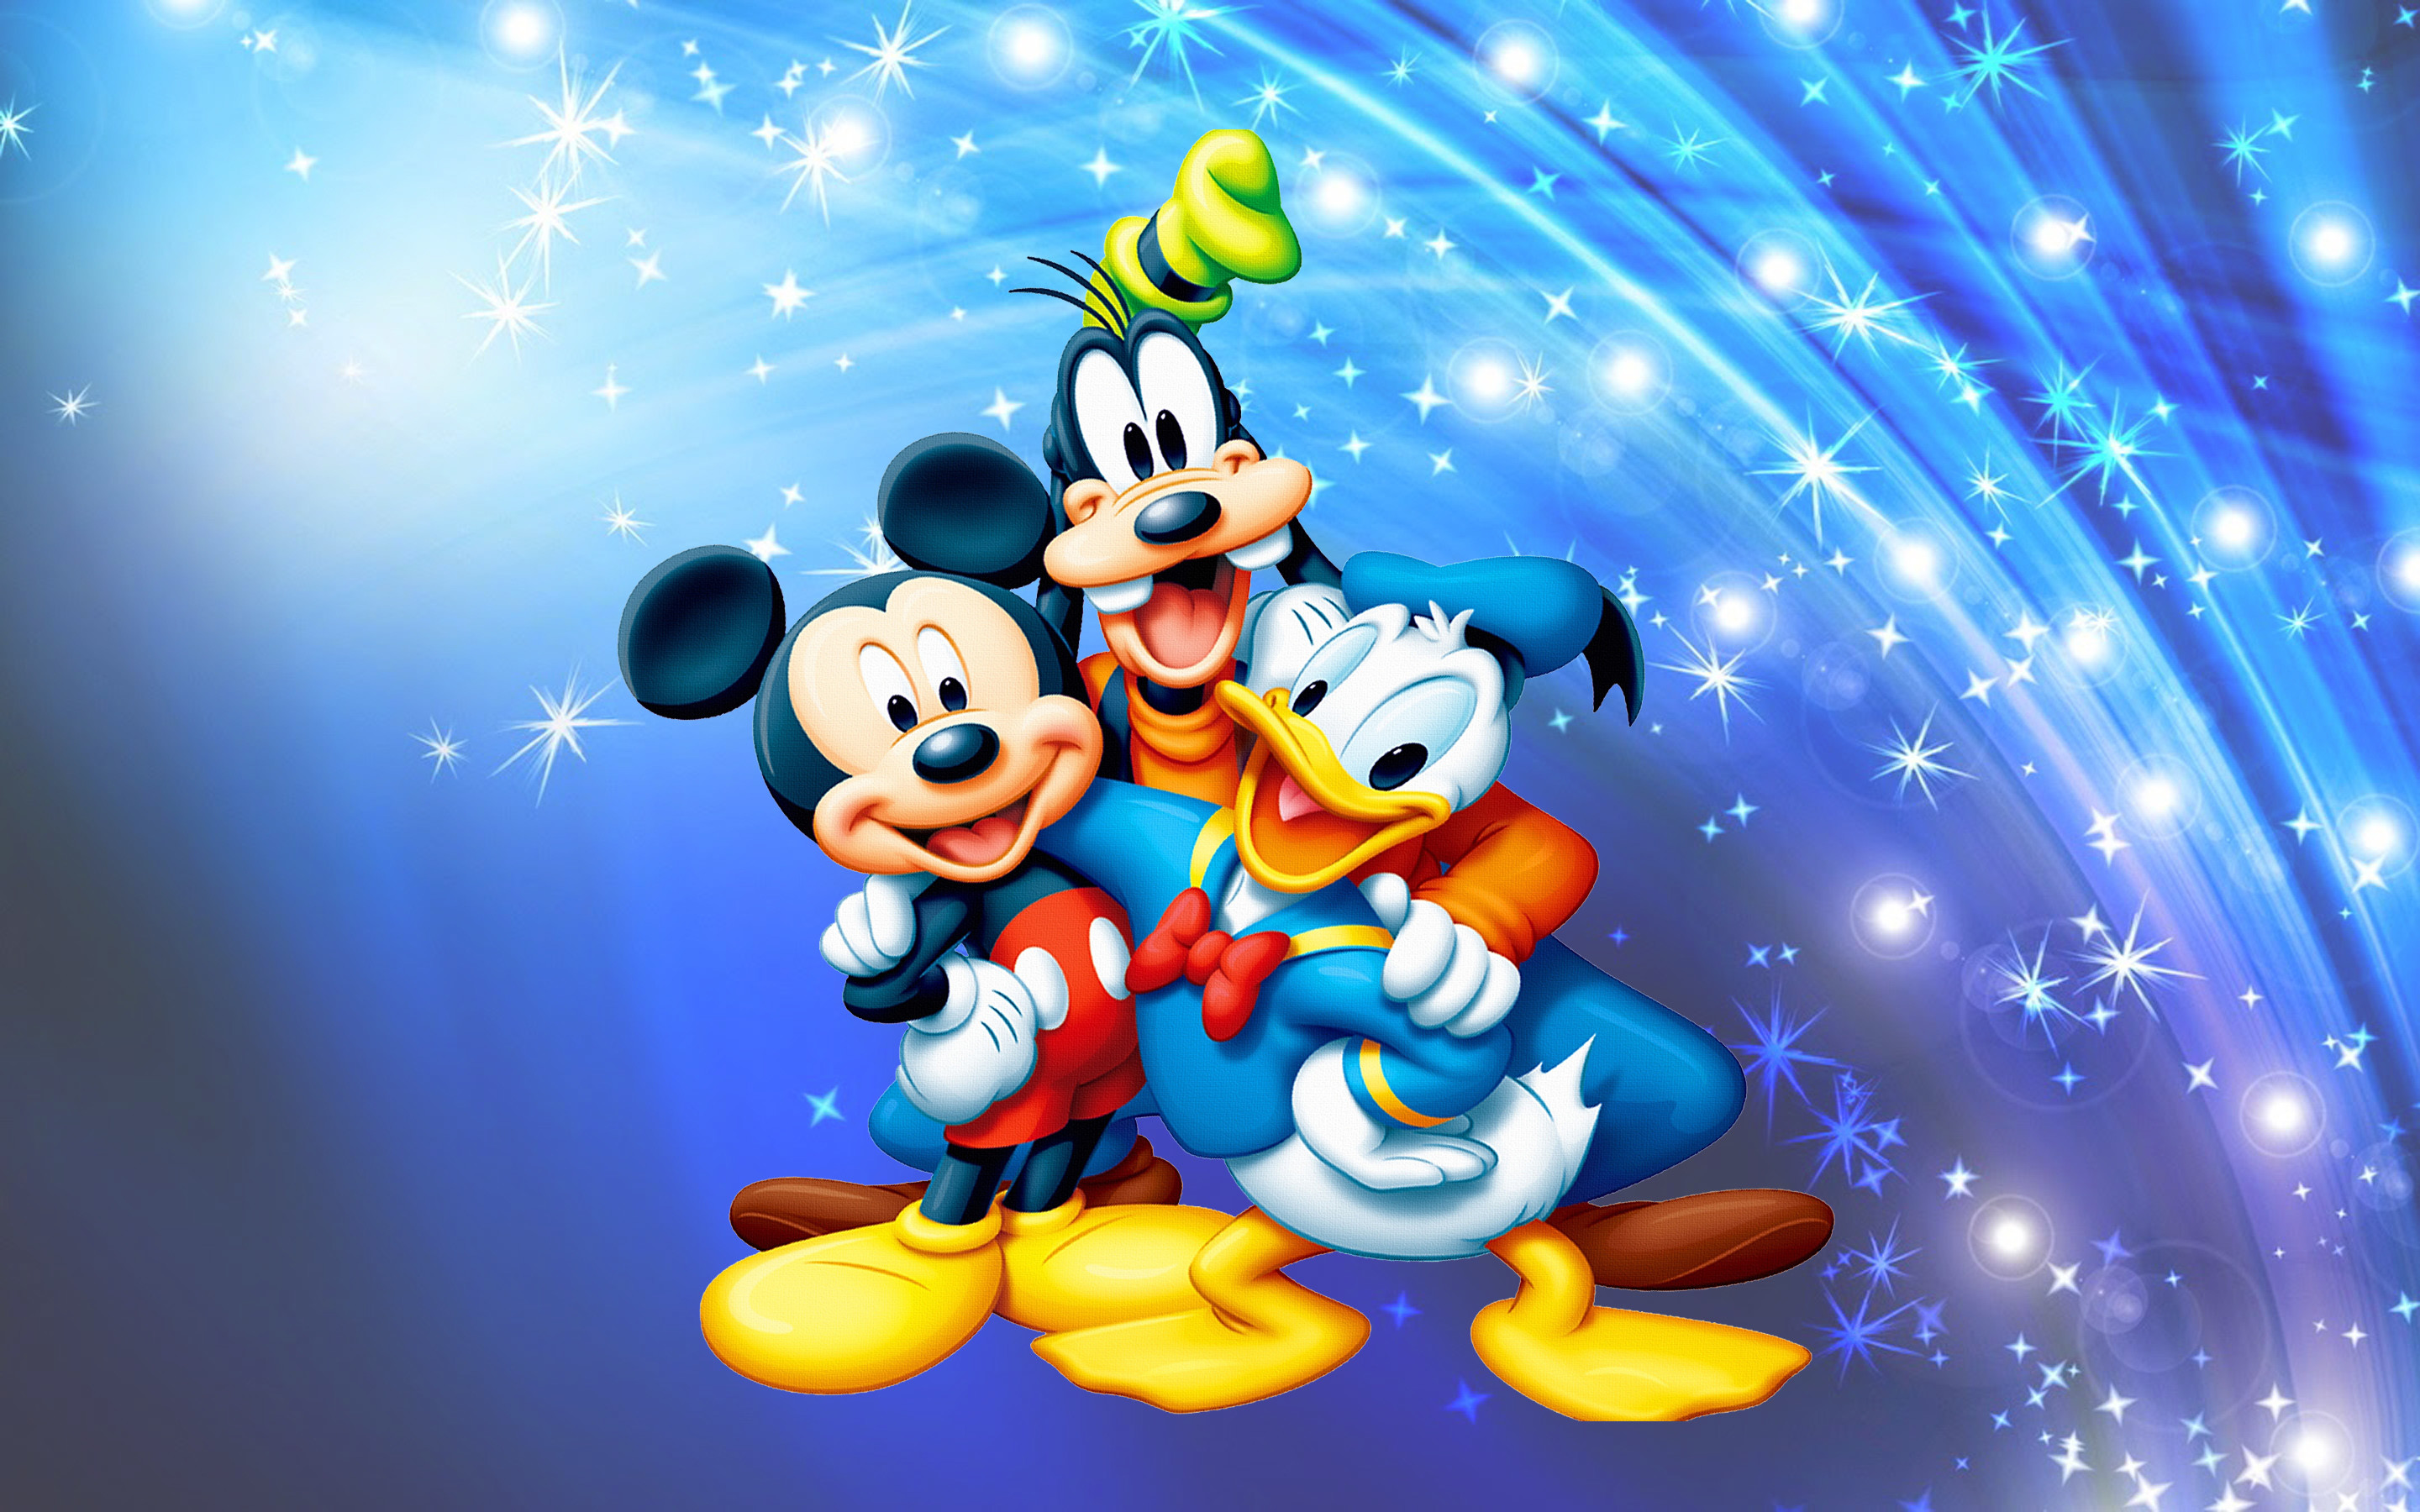 Minnie Y Mickey Mouse Fondos De Pantalla: Minnie And Mickey Mouse Wallpapers (56+ Images